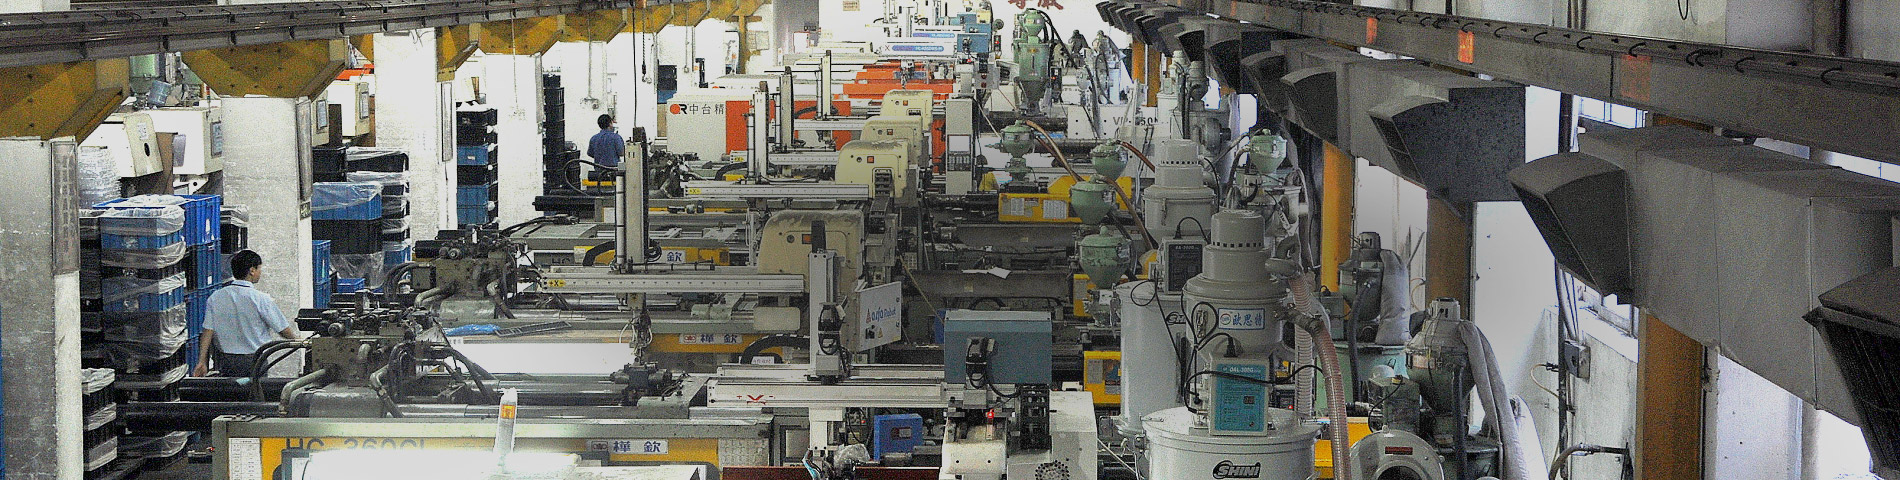 TERA has extensive experience in manufacturing plastic & silicon products for 27 more years